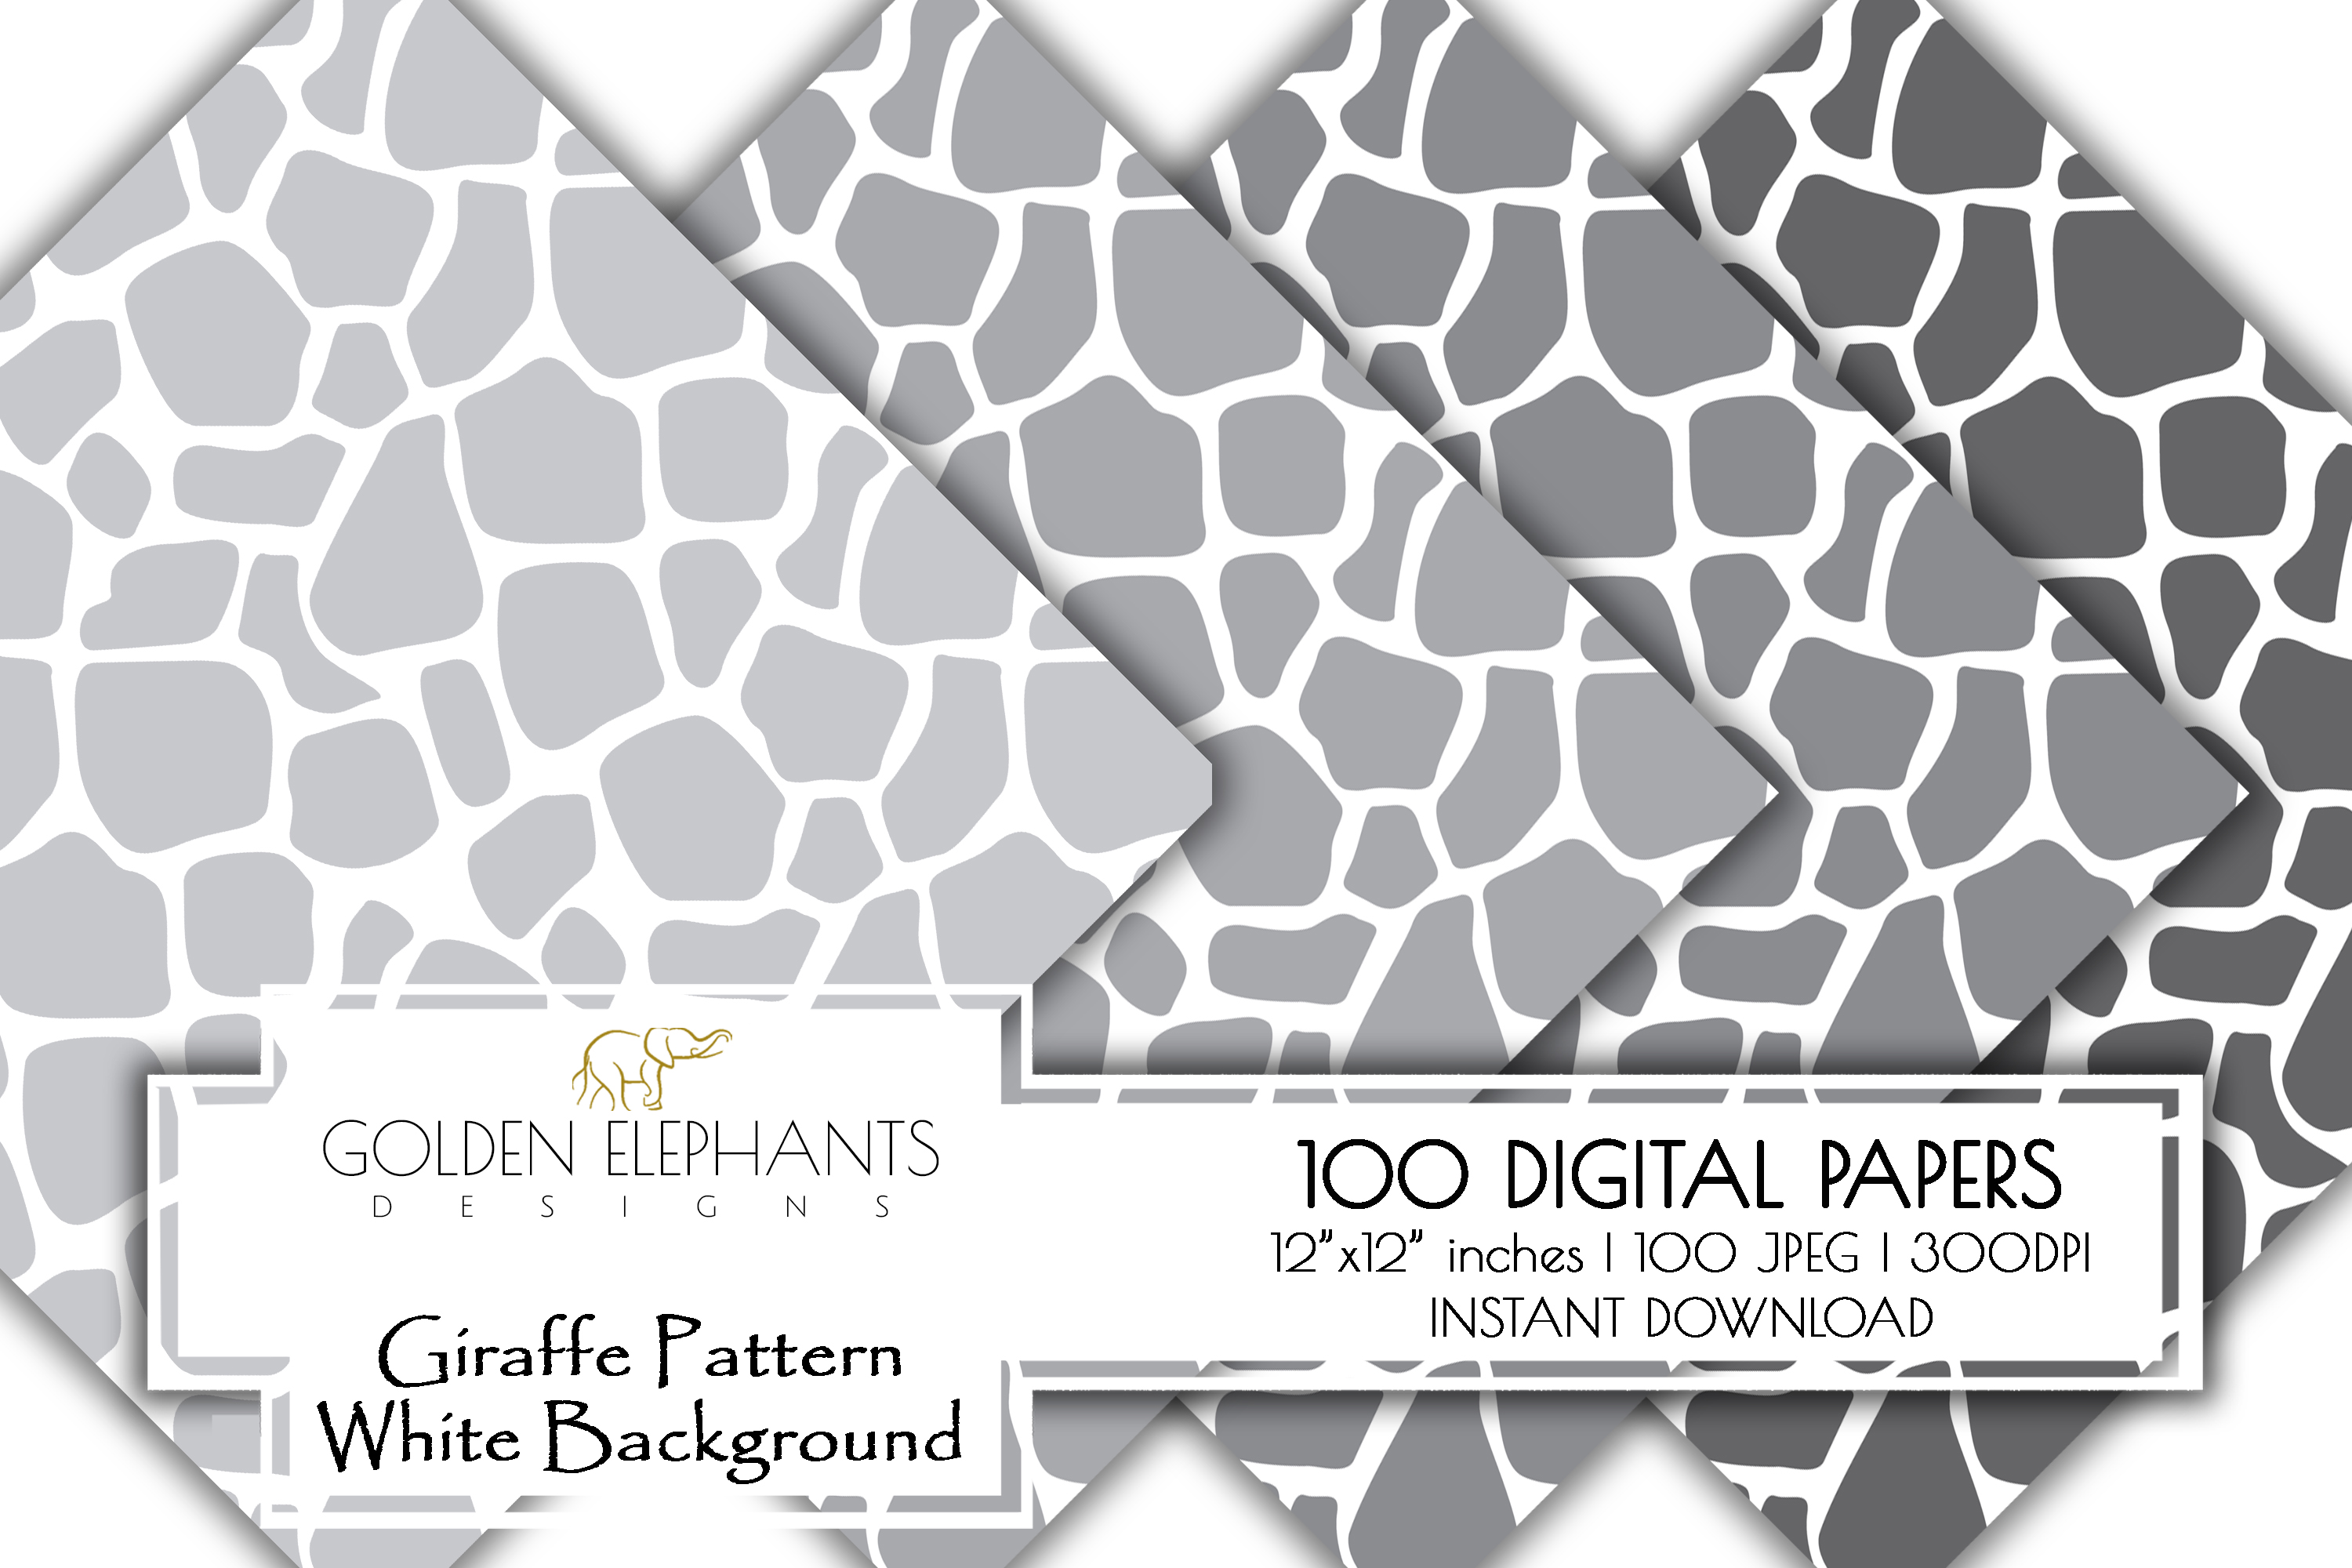 100 Giraffe Pattern w/ White Background Digital Paper example image 9